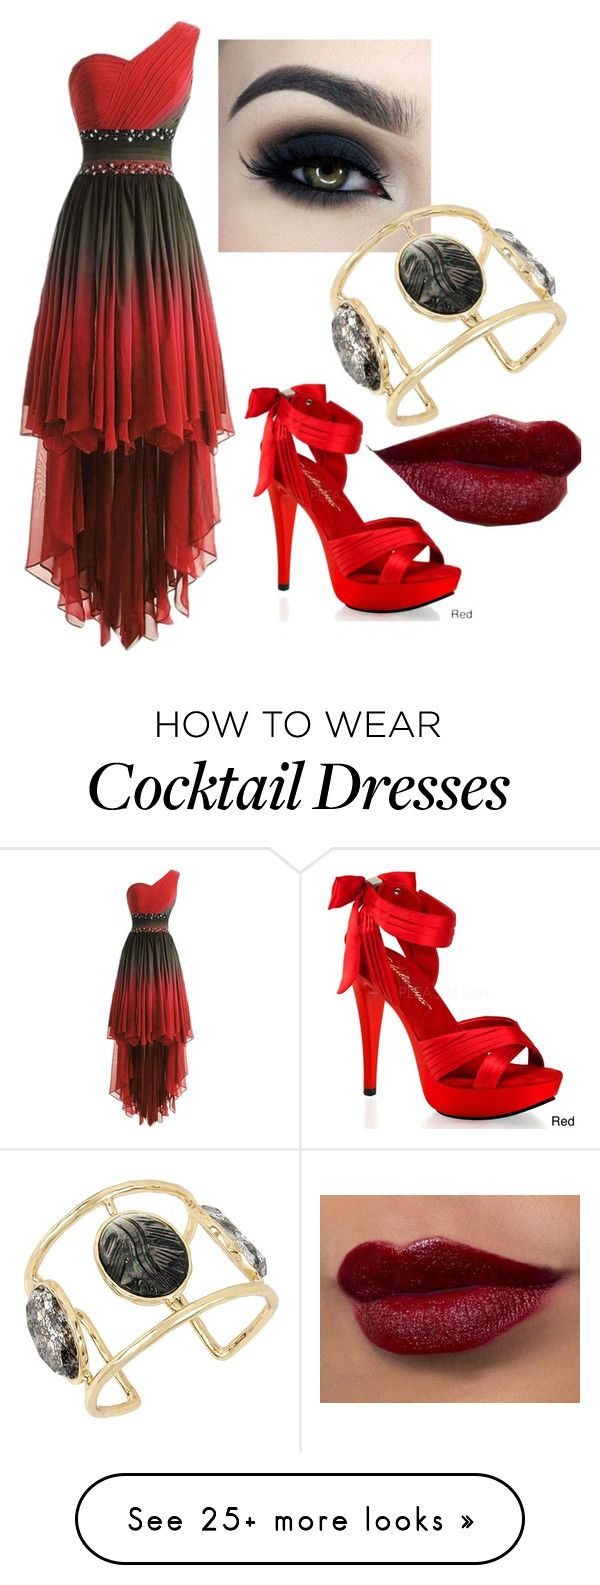 """Ready Red"" by haylee-rose999 on Polyvore featuring Too Faced Cosmetics, Betsey Johnson, Pleaser, gold, black and red"